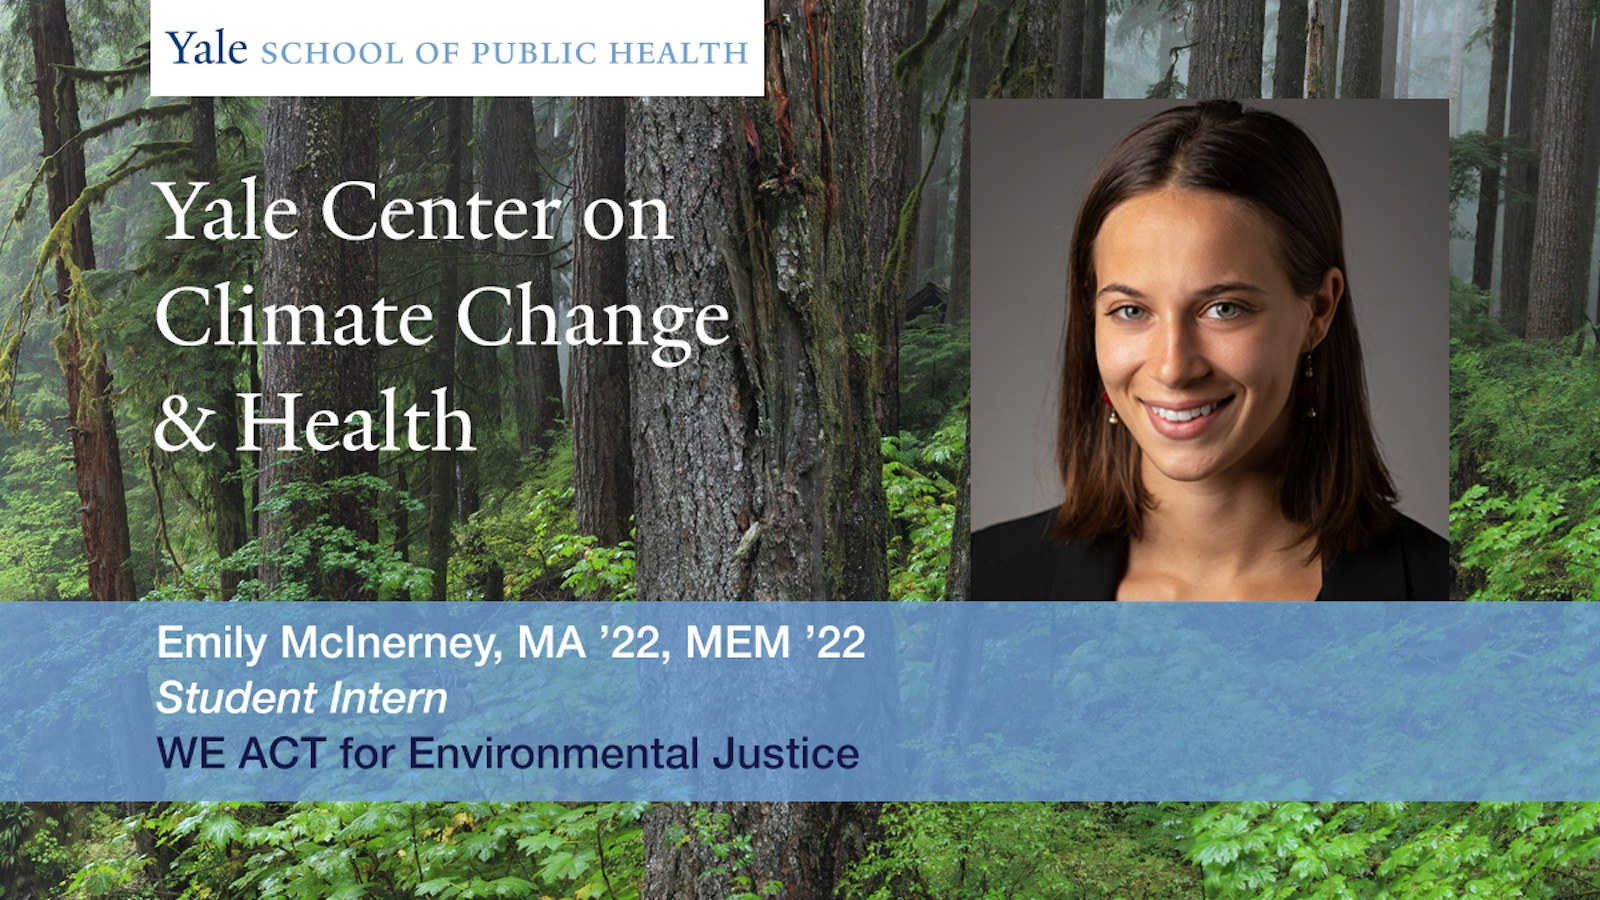 Yale Center on Climate Change & Health Intern Emily McInerney.